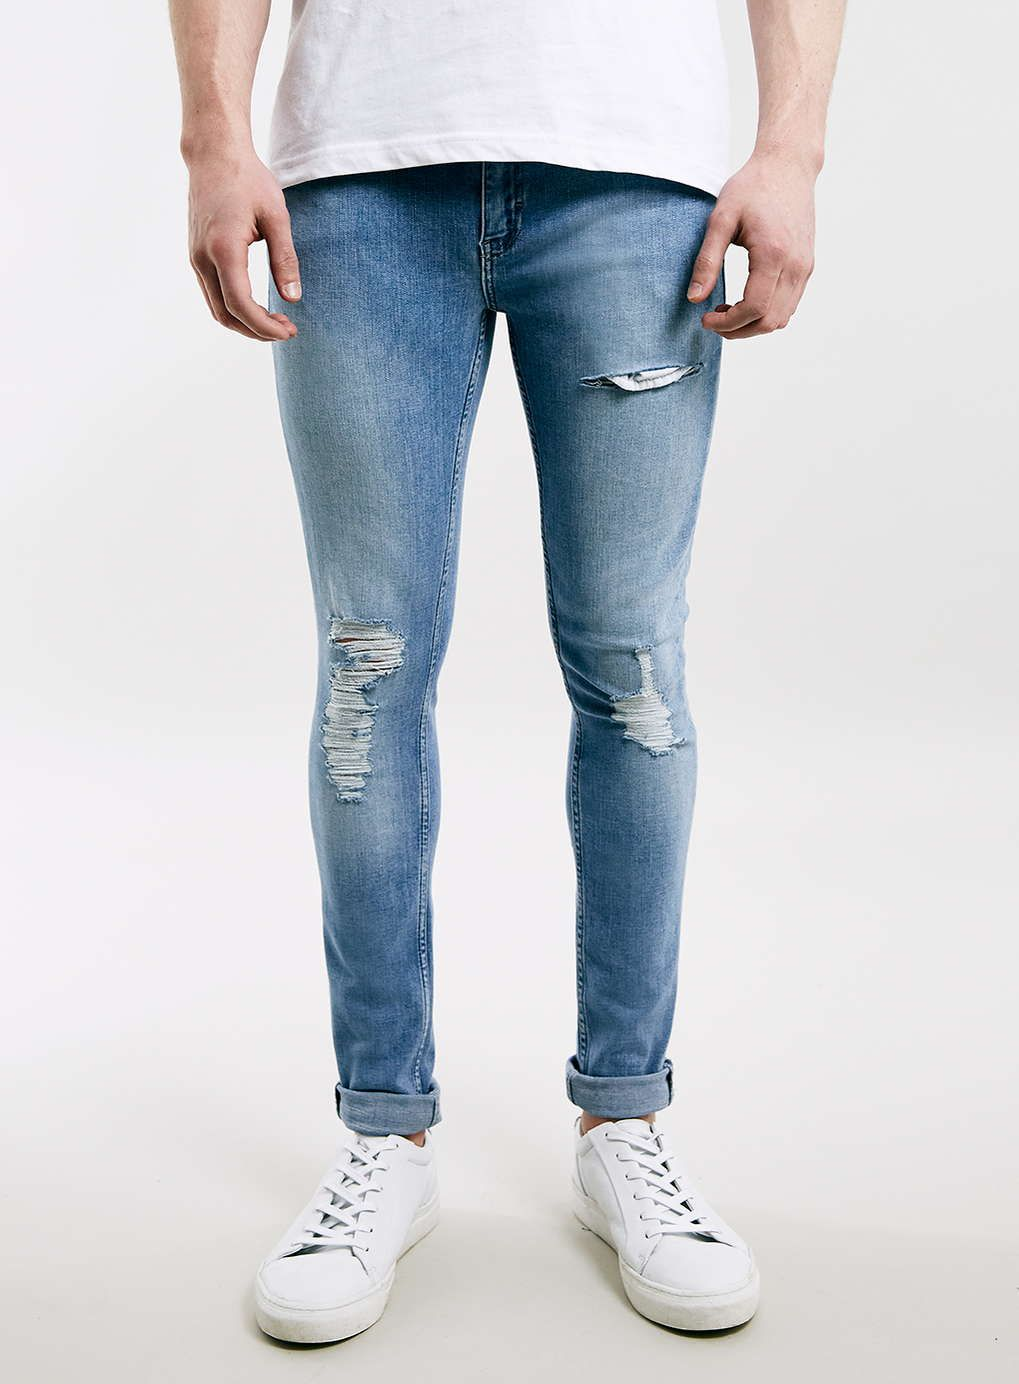 Bleach Wash Ripped Spray On Skinny Jeans